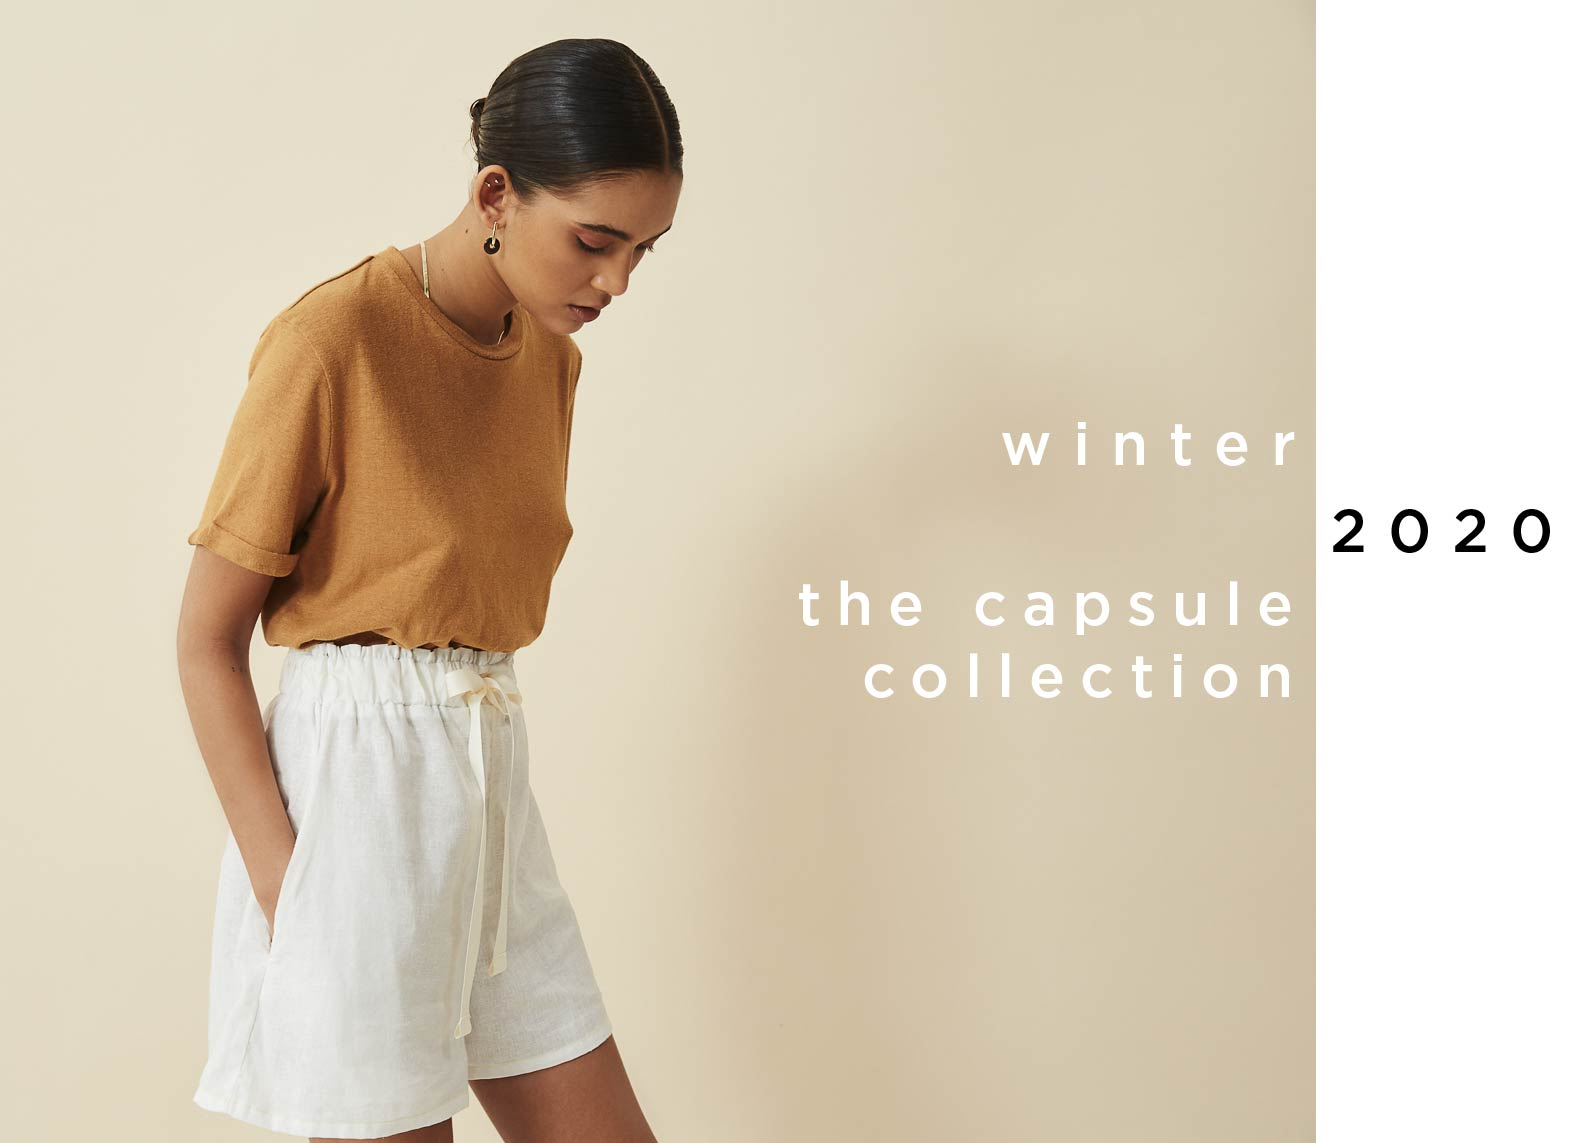 winter 2020 capsule collection